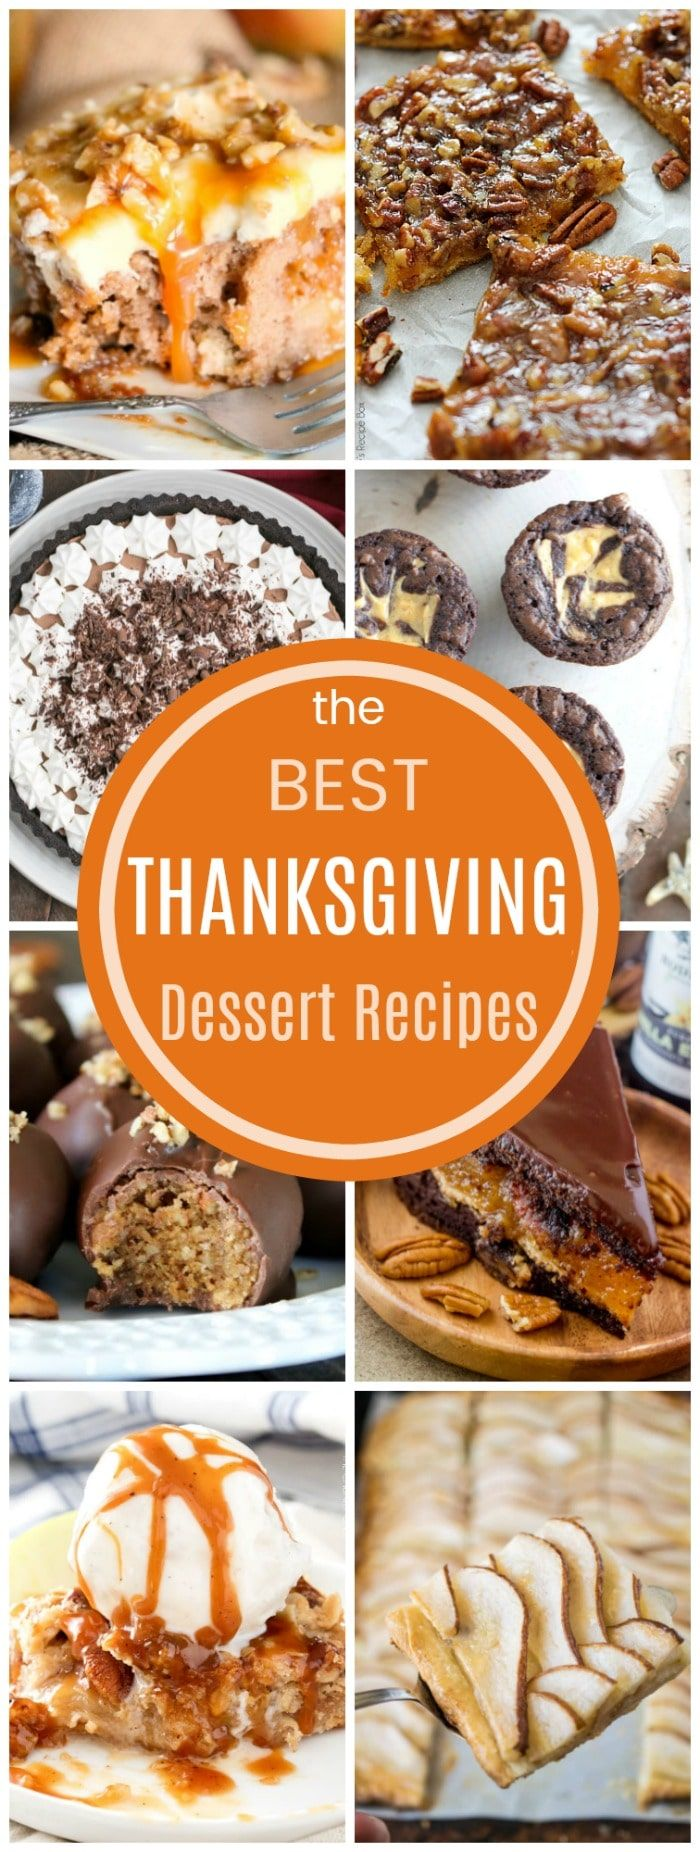 The Best Thanksgiving Dessert Recipes - not just apple pie and pumpkin pie, you'll find cakes, cookies, brownies, and more amazing desserts for your holiday menu! #thanksgiving #thanksgivingdessert via @cupcakekalechip